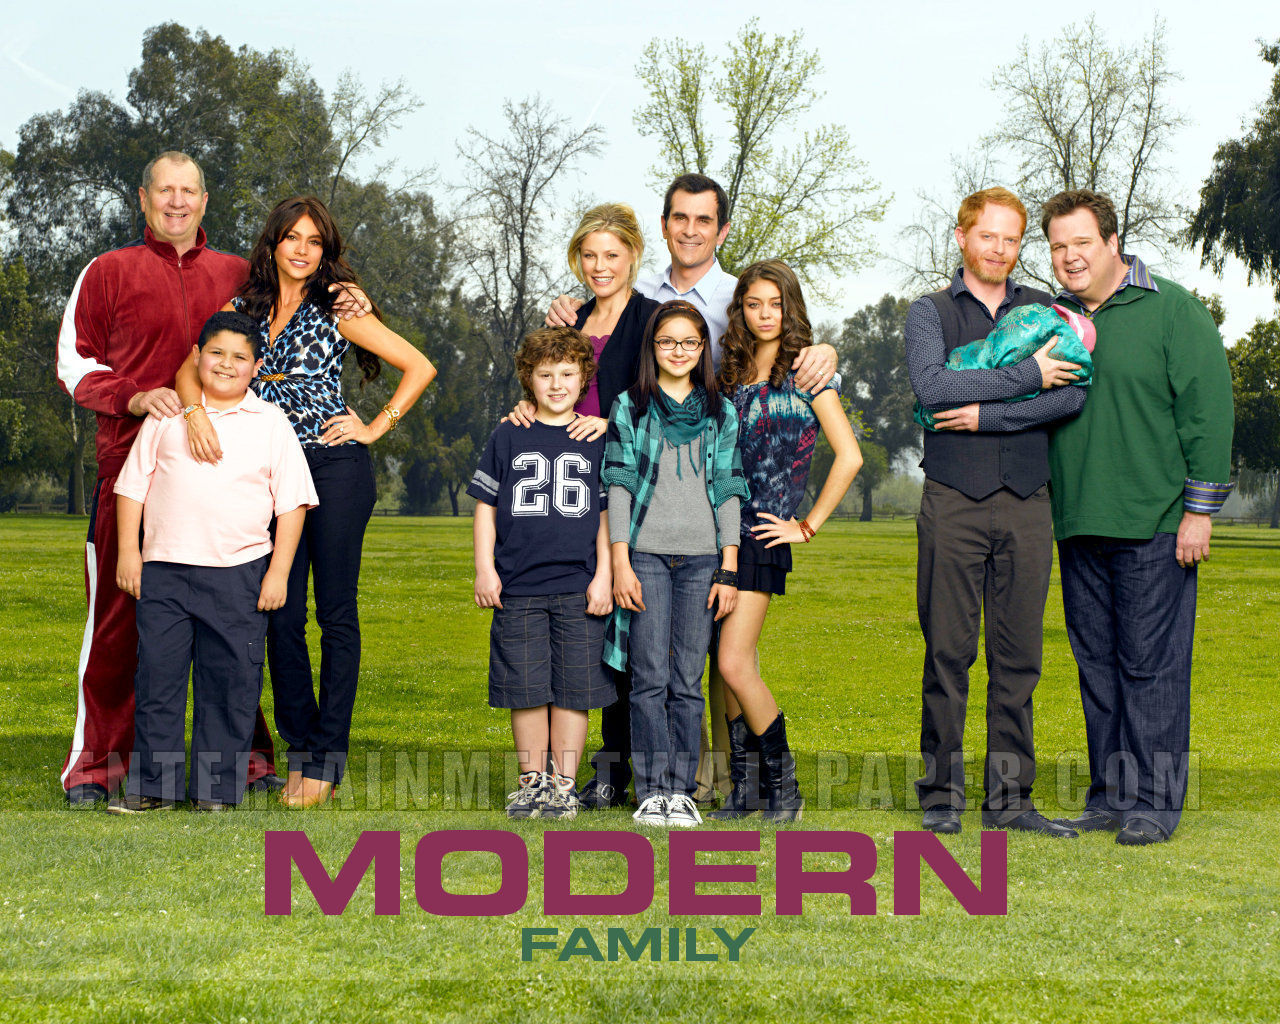 modern family wallpaper modern family wallpaper 8938506 fanpop